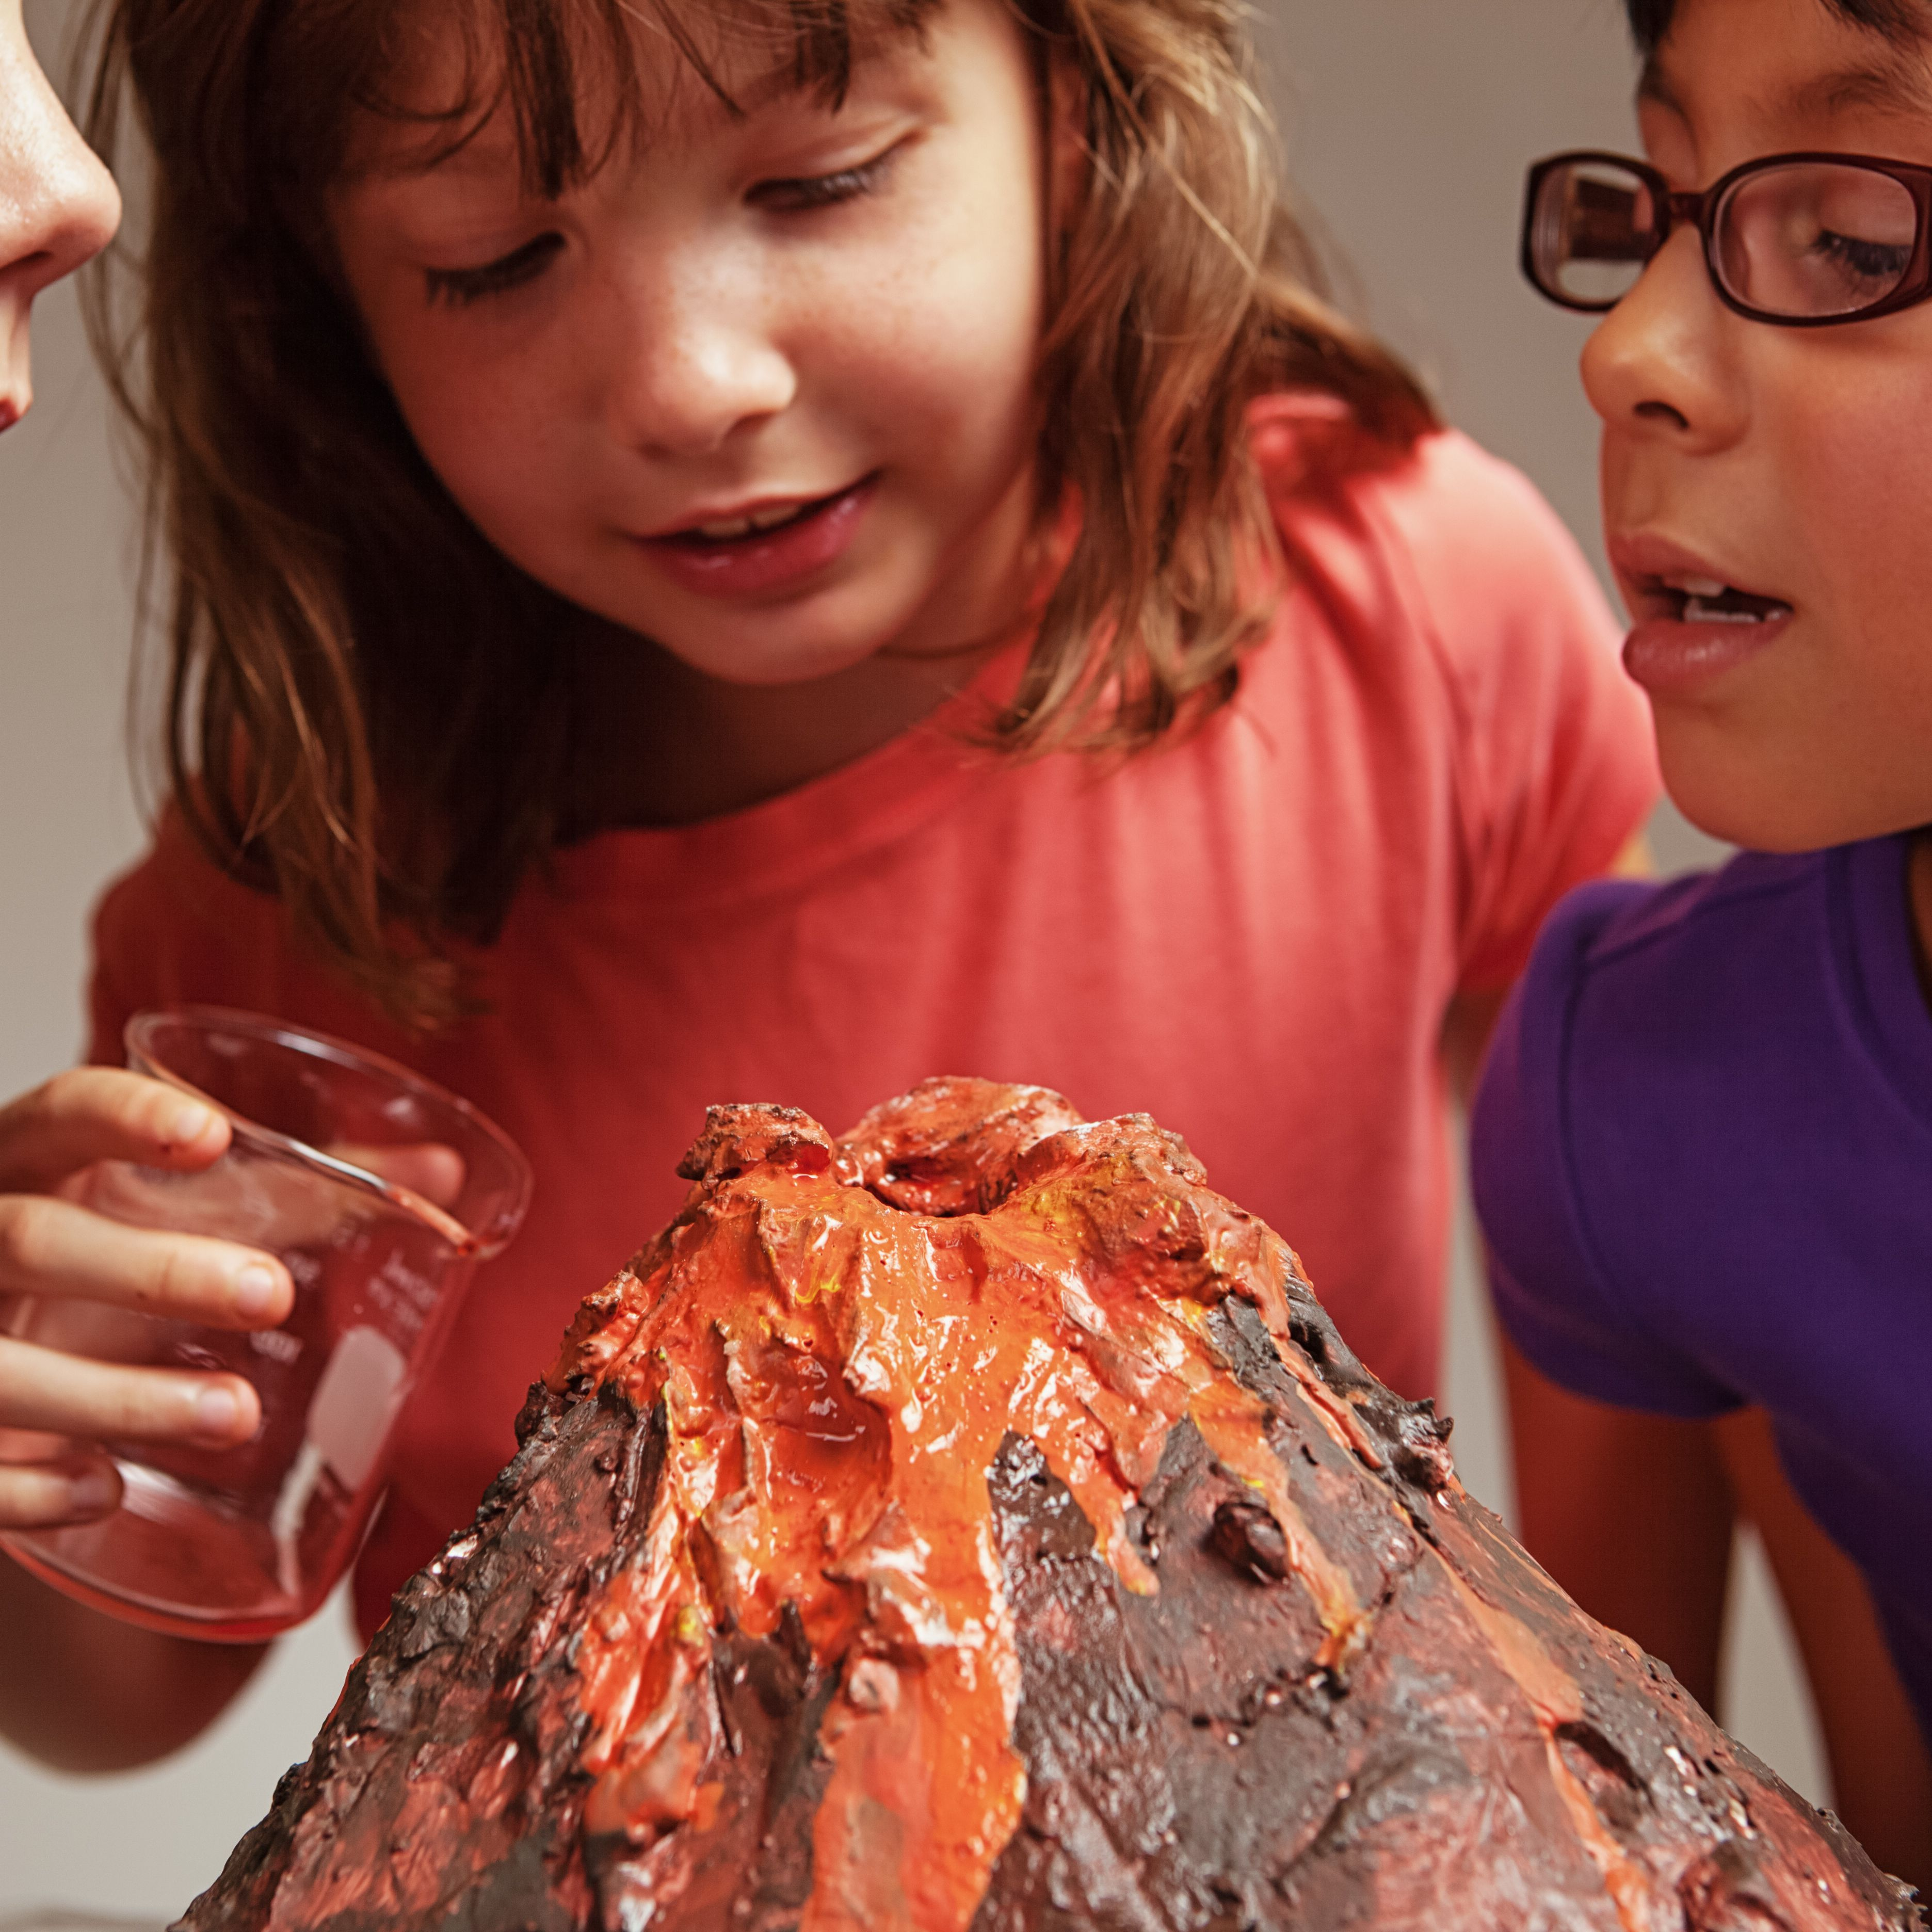 How To Make A Paper Mache Volcano That Erupts